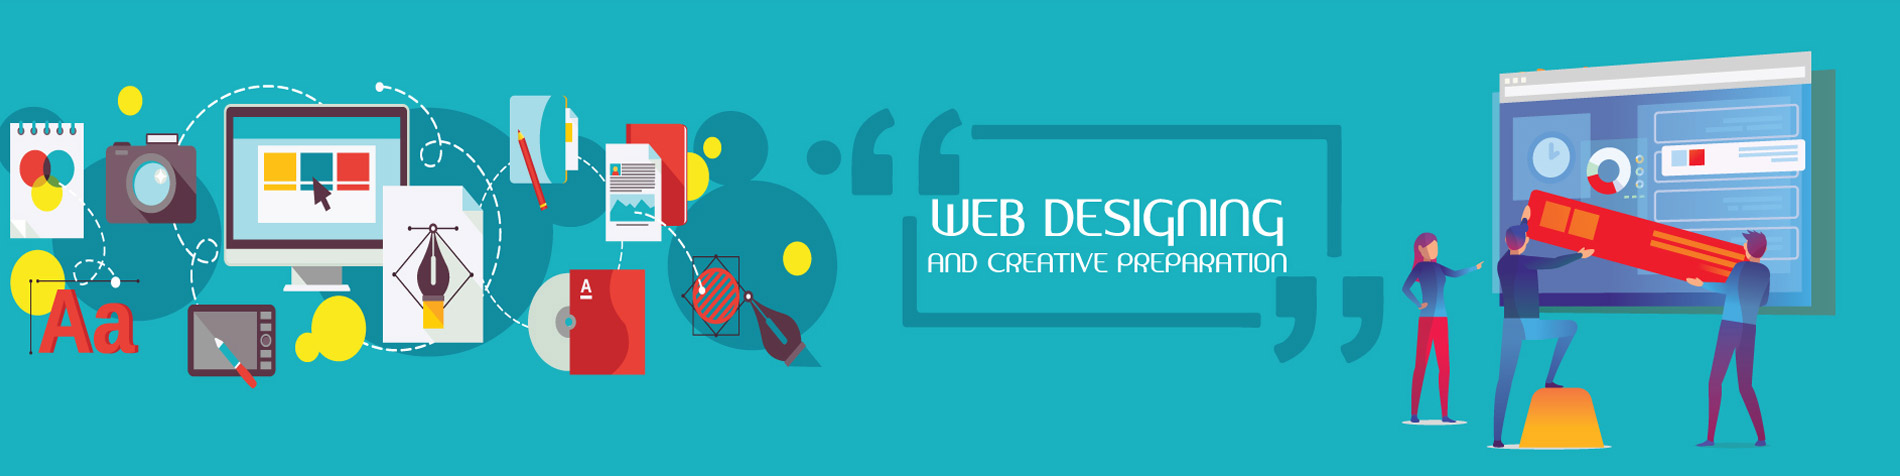 Best Web Design Services in Noida